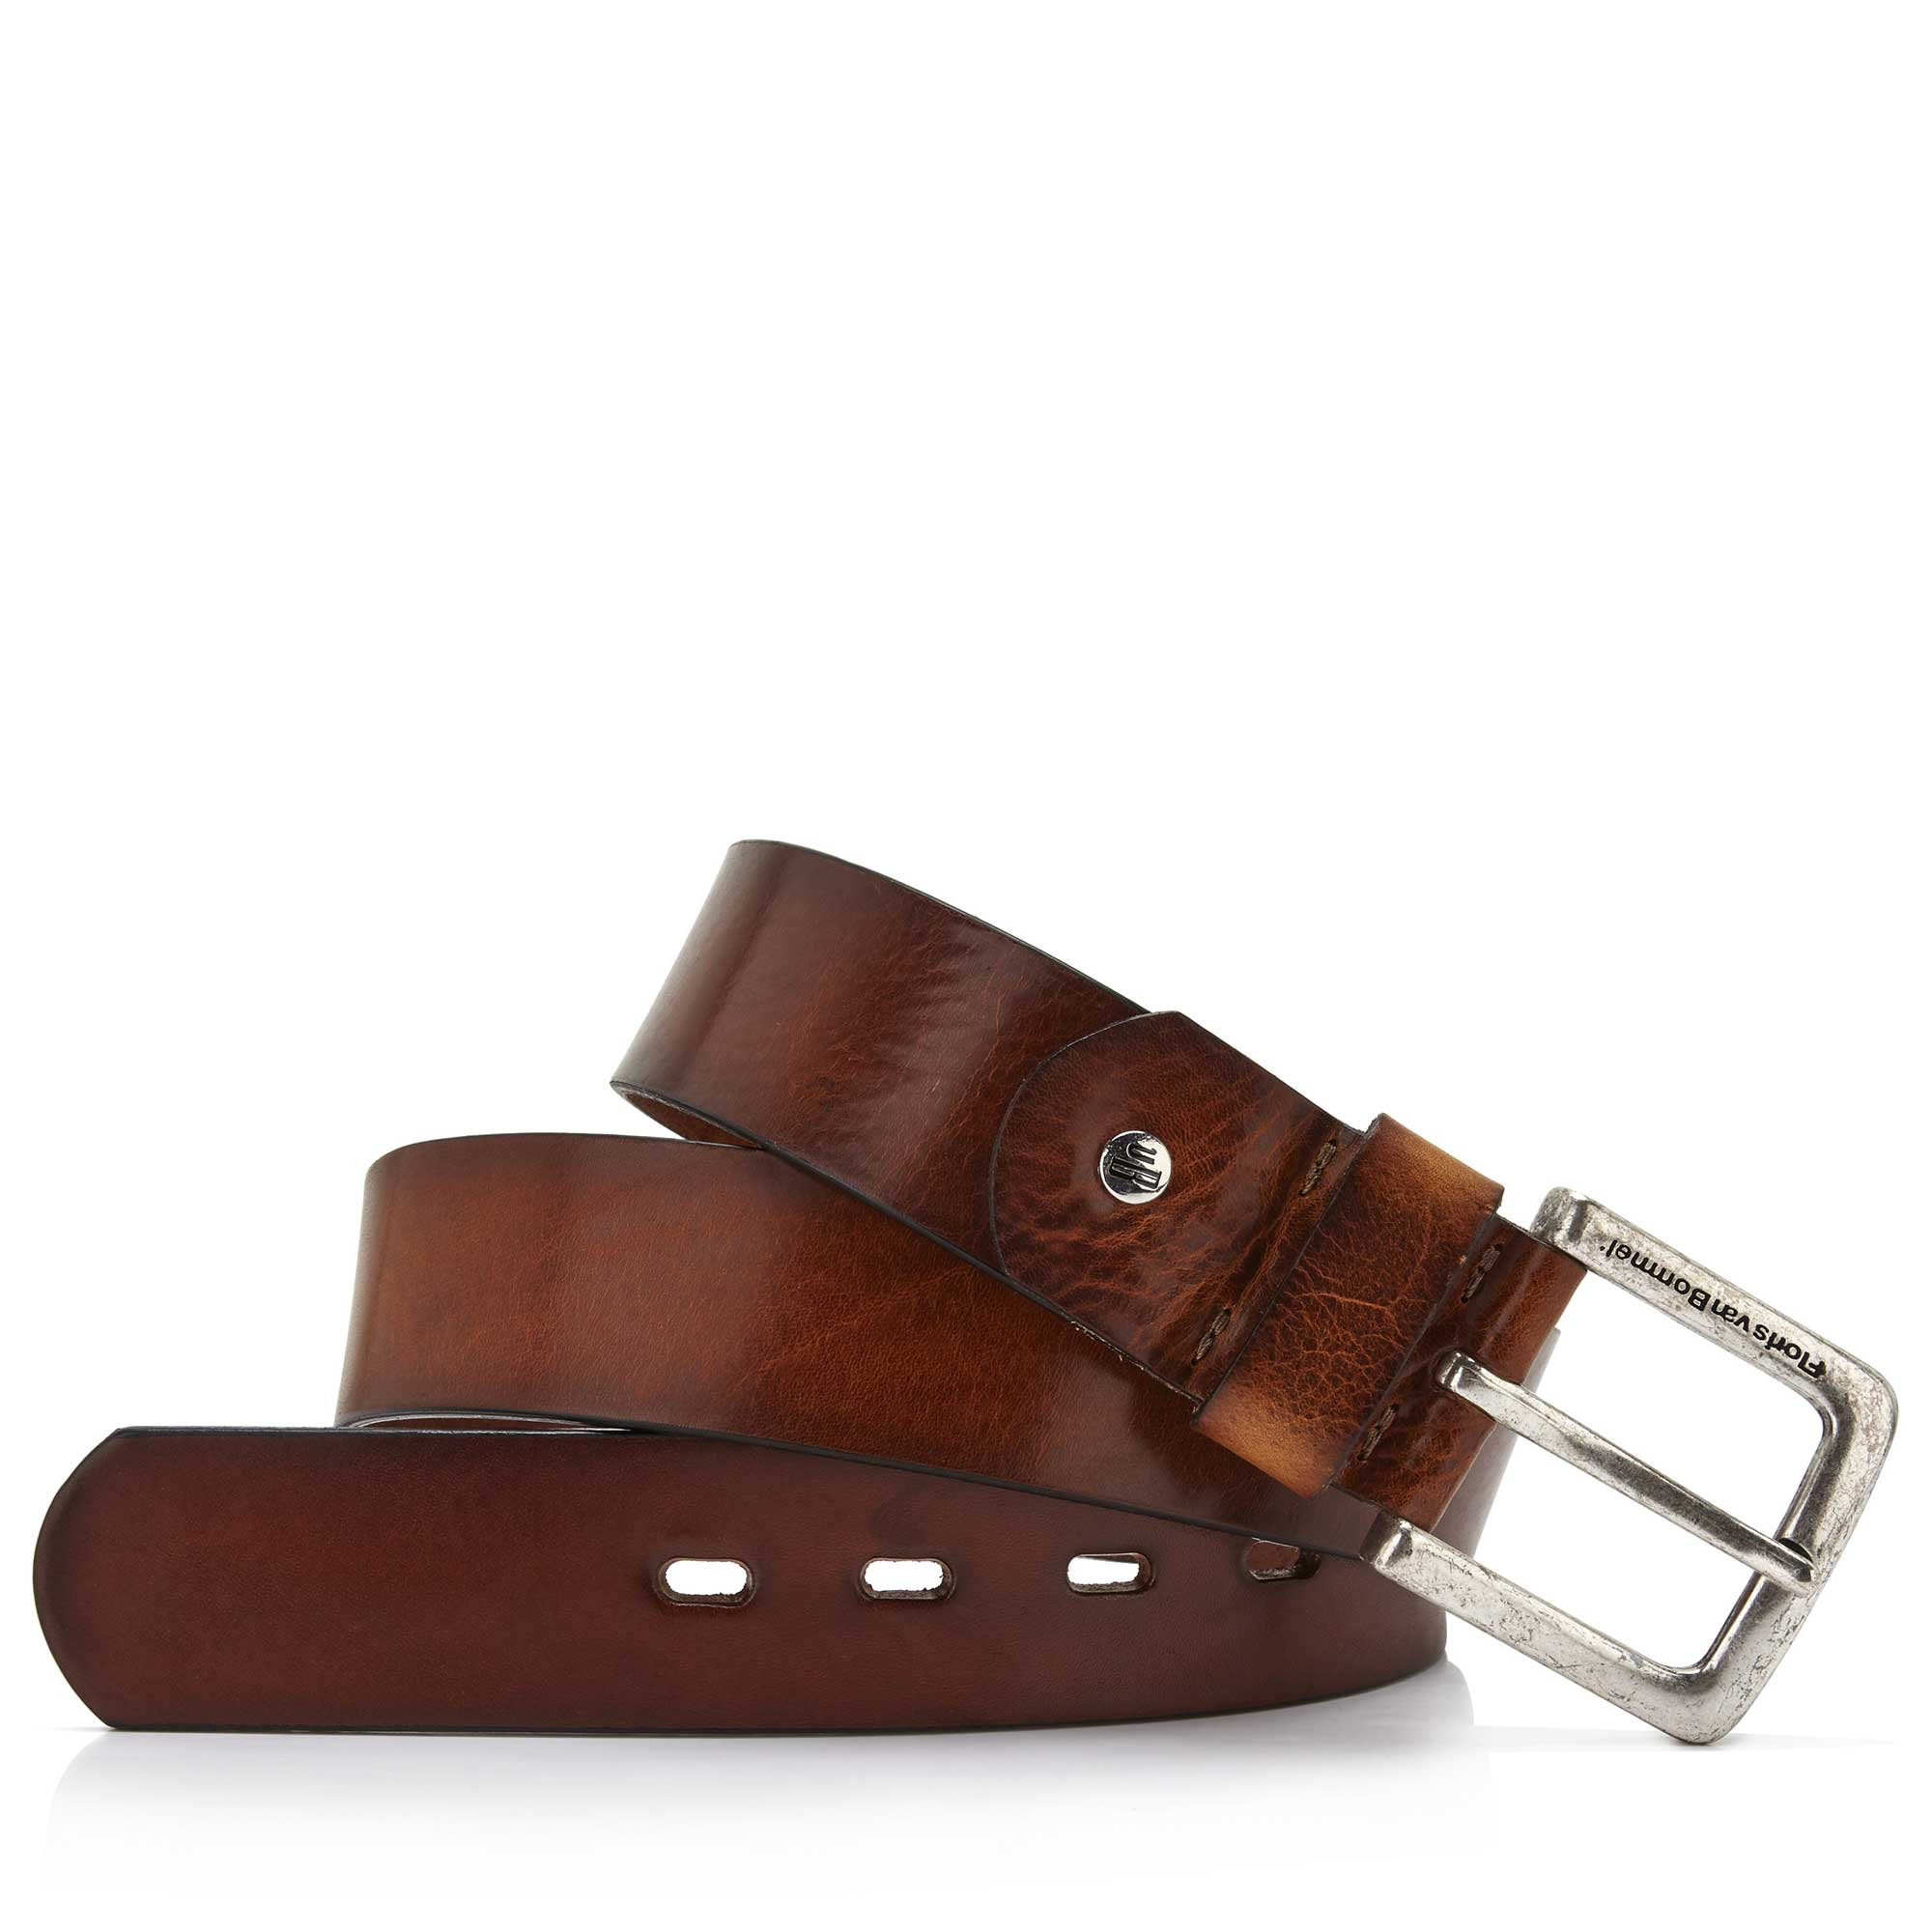 75045/00 - Floris van Bommel medium brown leather men's belt